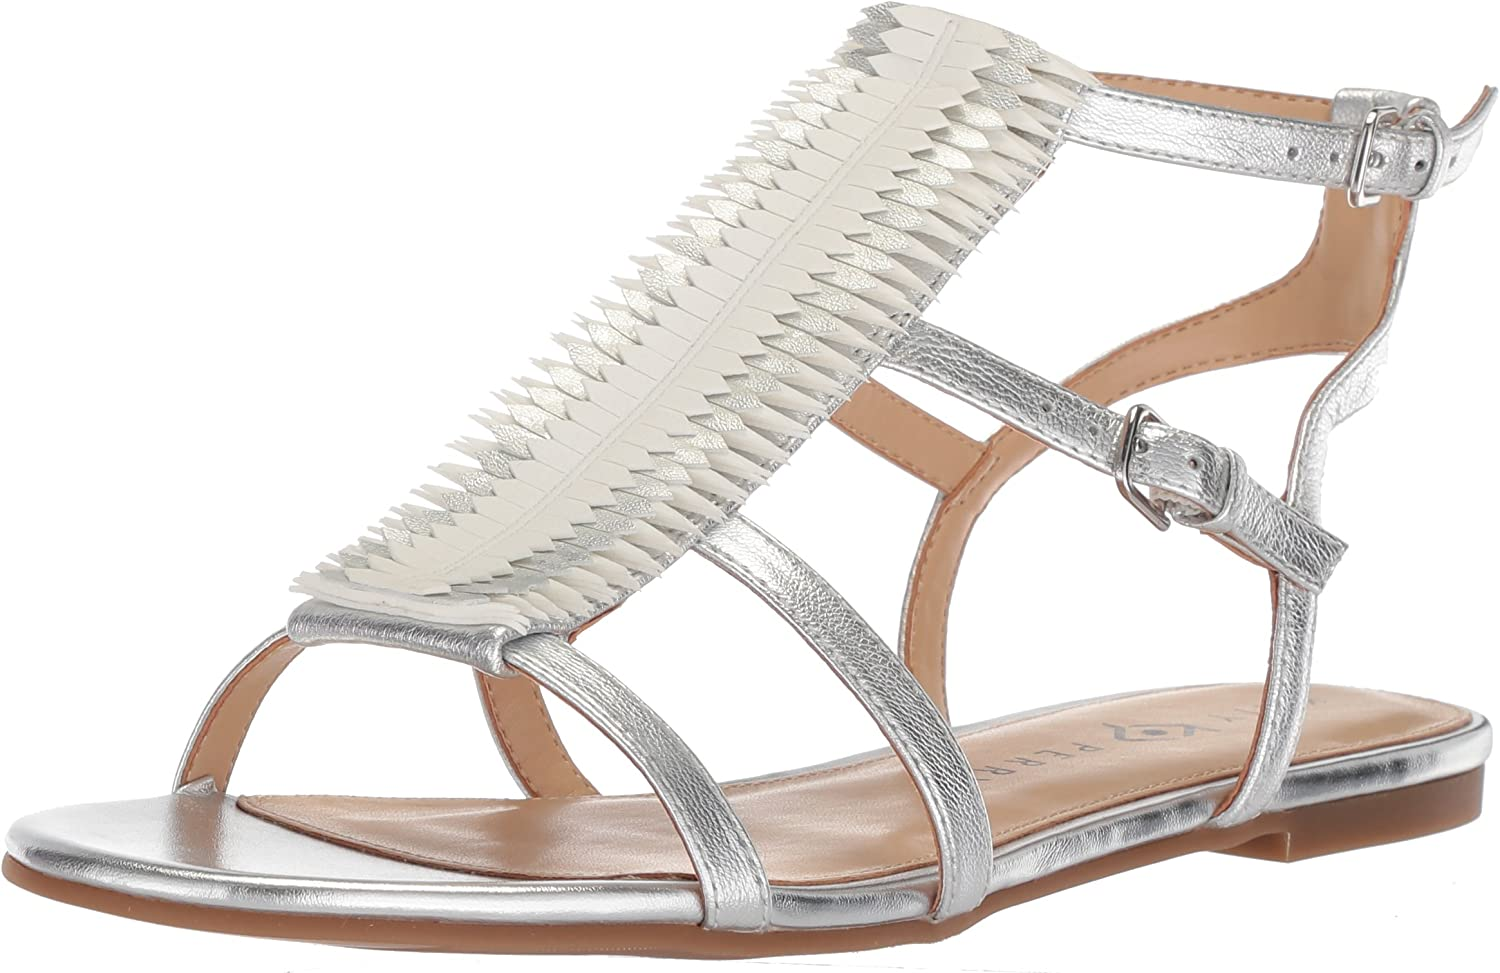 Katy Perry Women's Fees free!! Alanna Max 50% OFF Sandal The